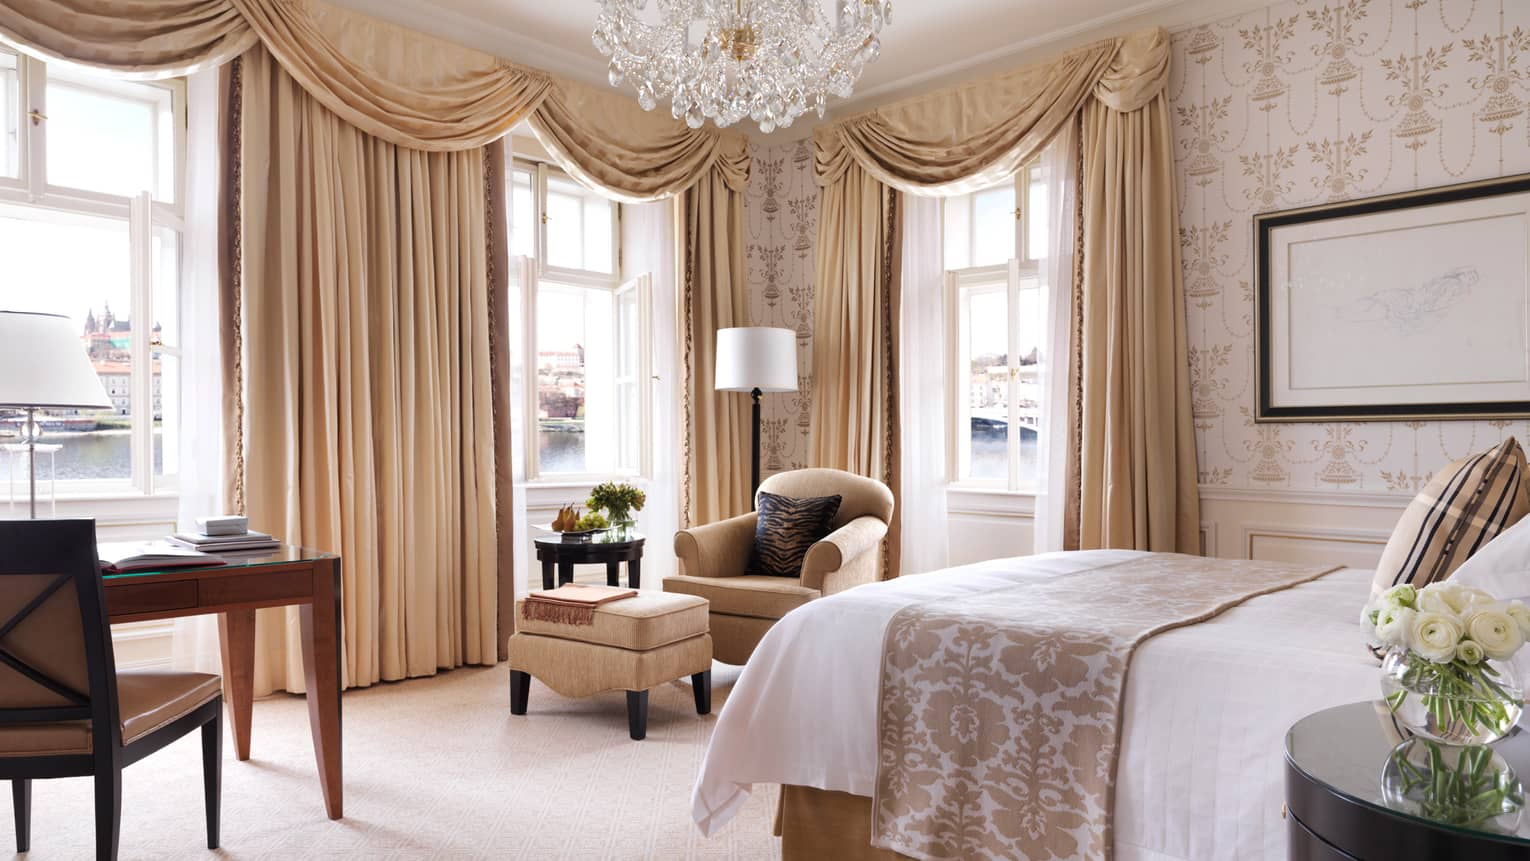 Premier Room bed, desk, chair, cream-and-gold Old European decor, long curtains, crystal chandelier